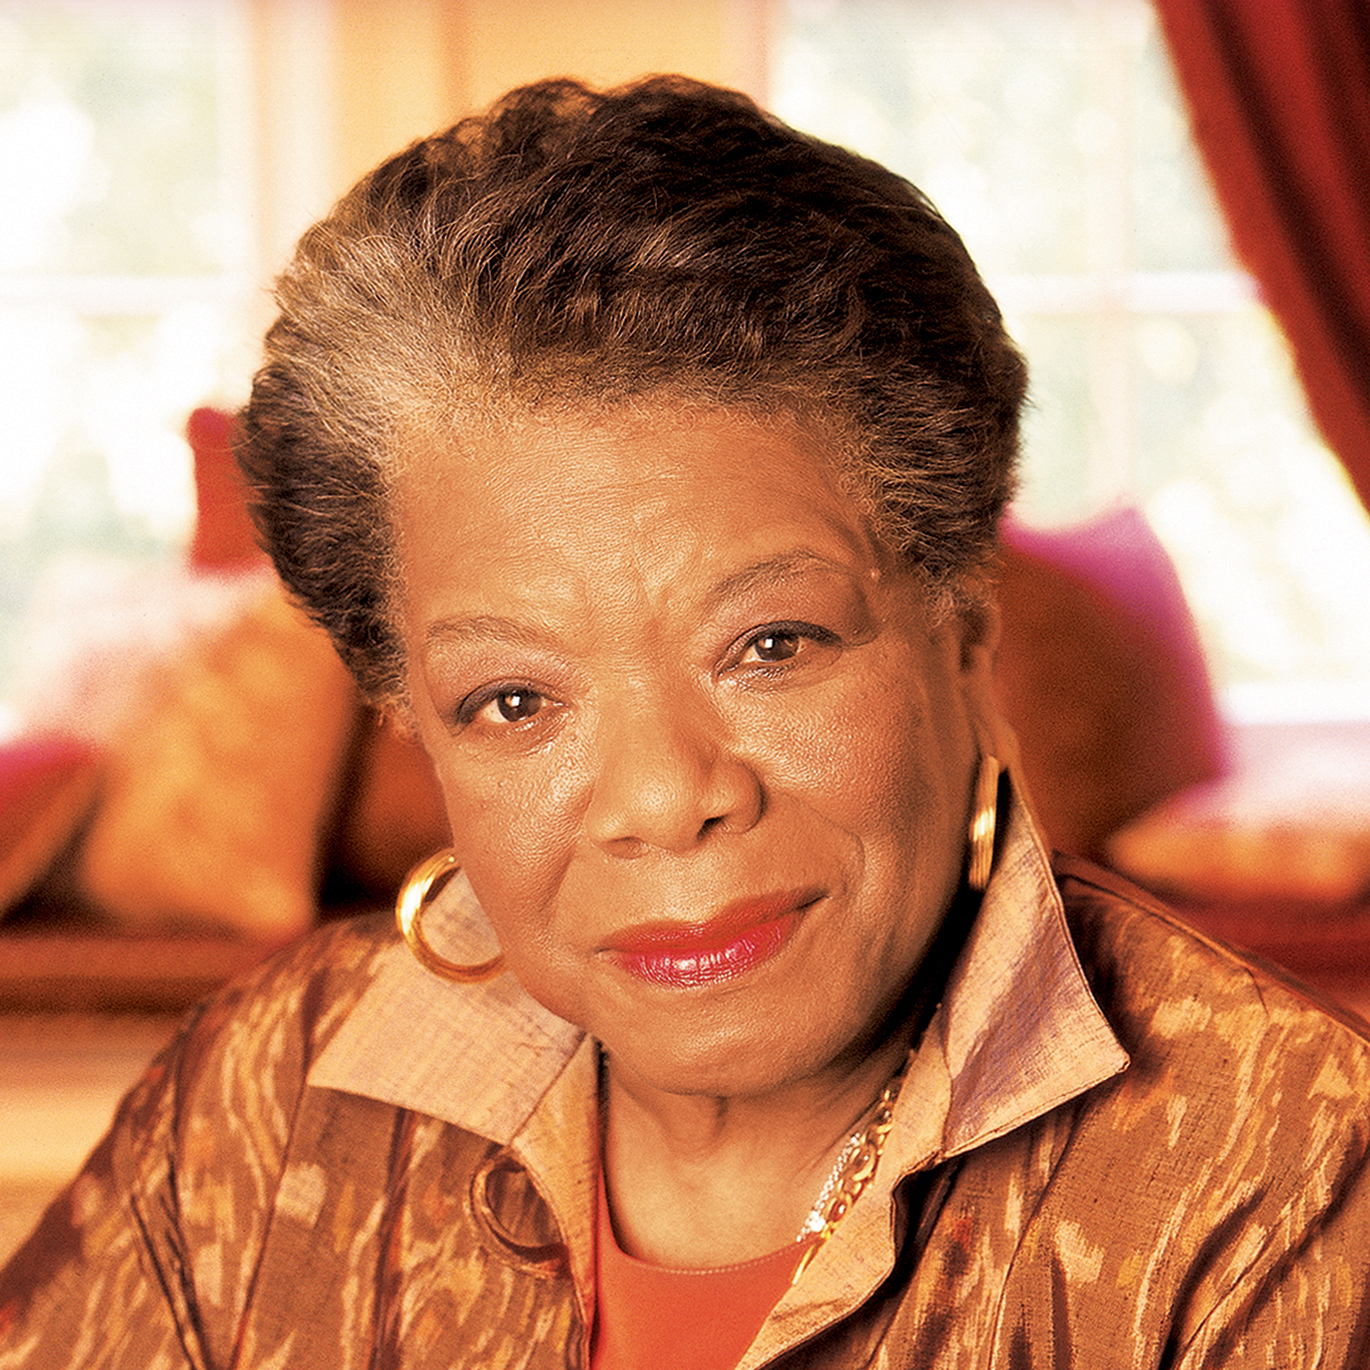 maya angelou 5 Still i rise- by maya angelou with lyrics - duration: 2:10 ivan martinez 135,164 views 2:10 listen: dr maya angelou recites her poem phenomenal woman.